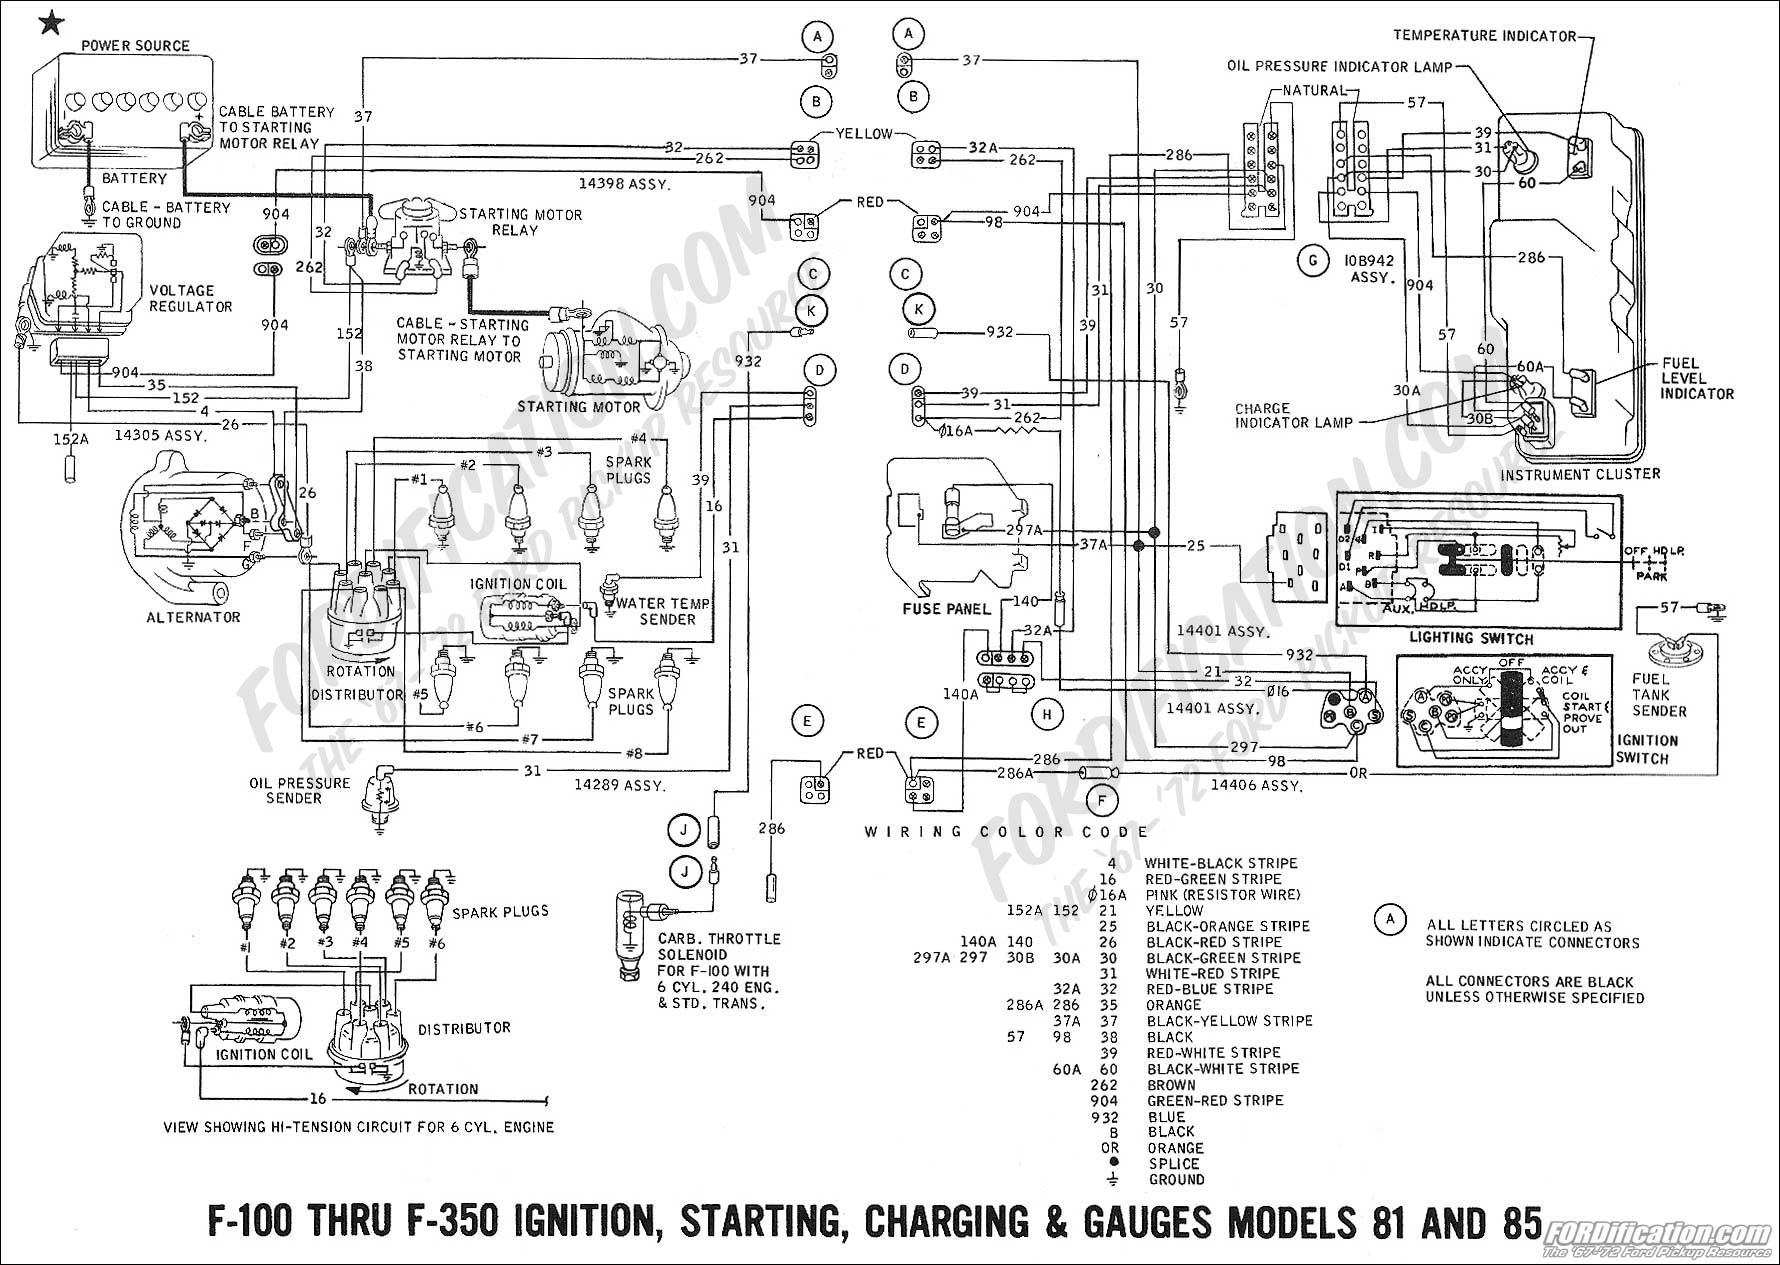 hight resolution of 1970 f100 wiring diagram wiring diagram mega 1970 ford f100 ignition switch wiring diagram 1970 ford f100 wiring diagram